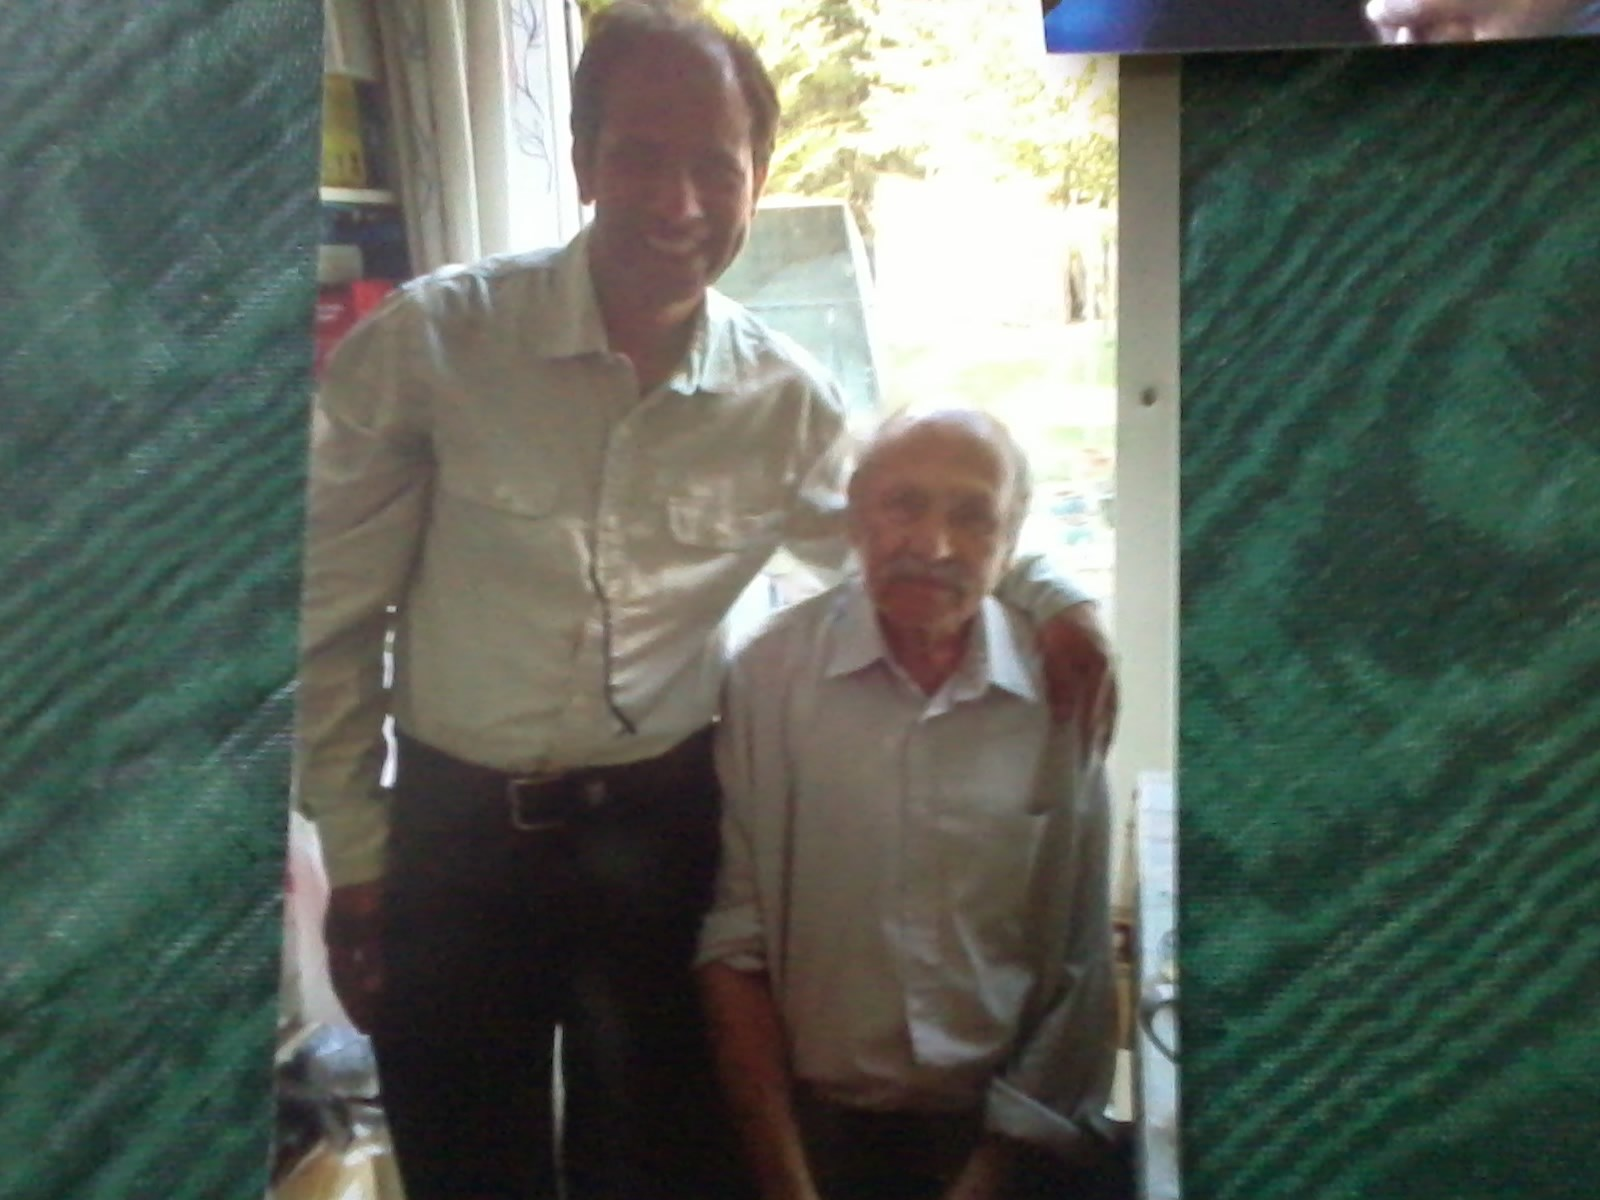 dad&ashraf (family friend/old neighbour)